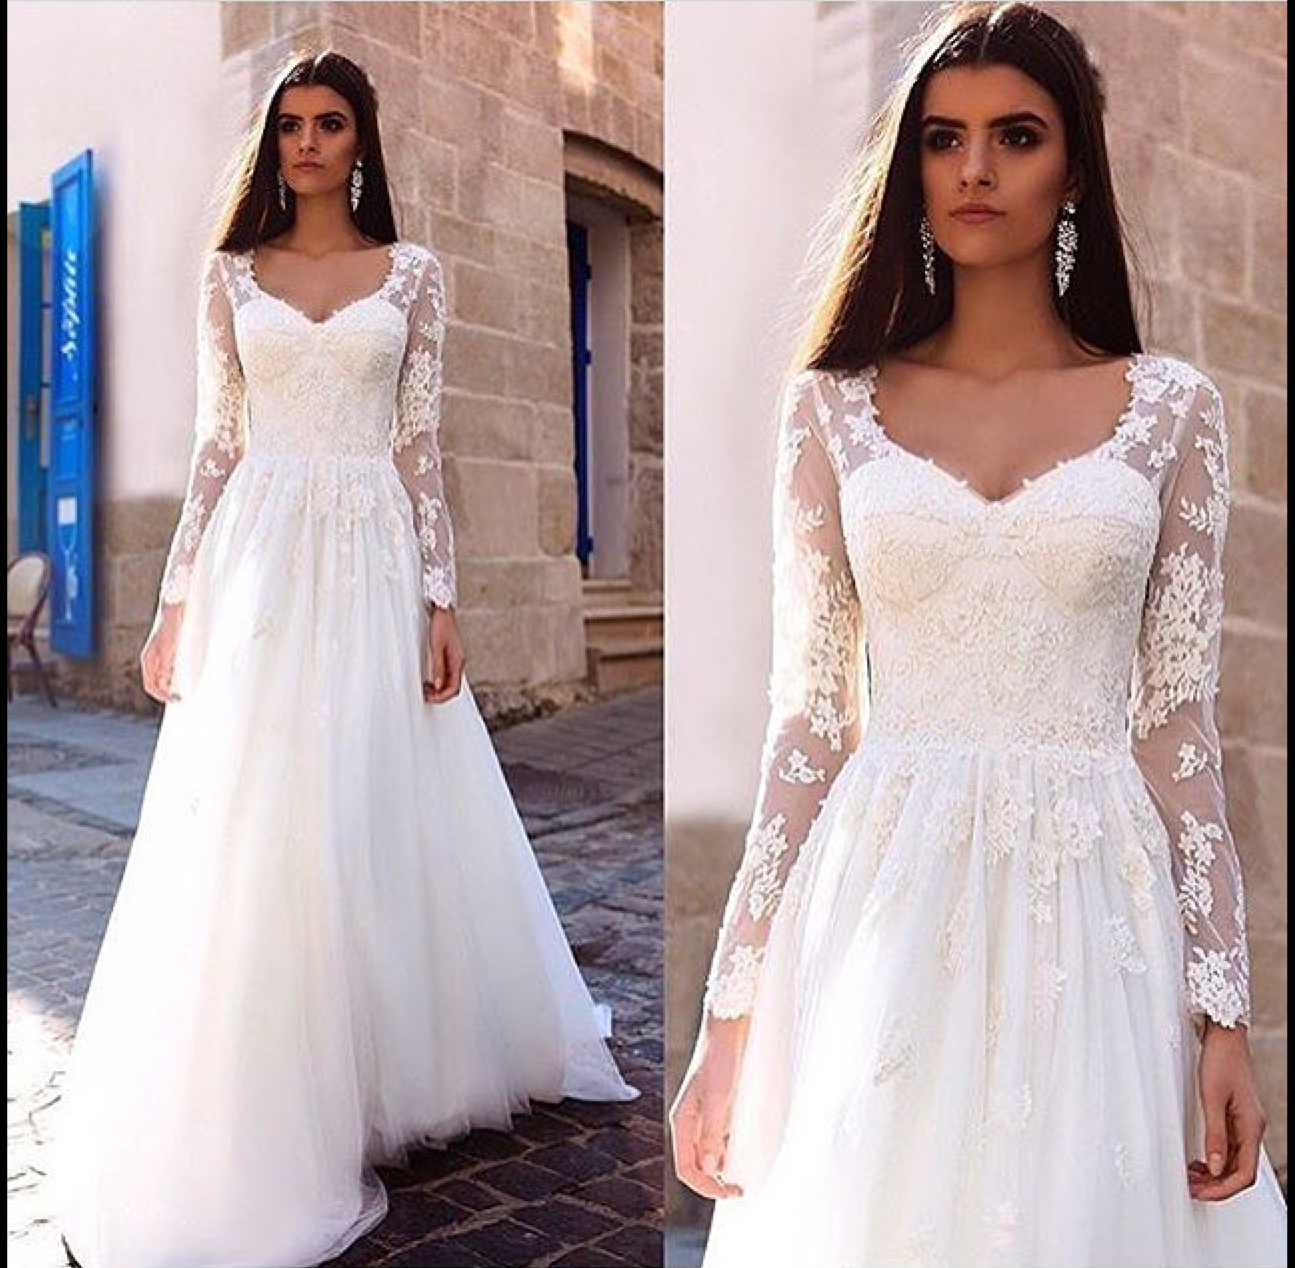 Lace Vintage Wedding Dress.Long Sleeve Lace Wedding Dress Lace Ball Gown Vintage Bridal Gown